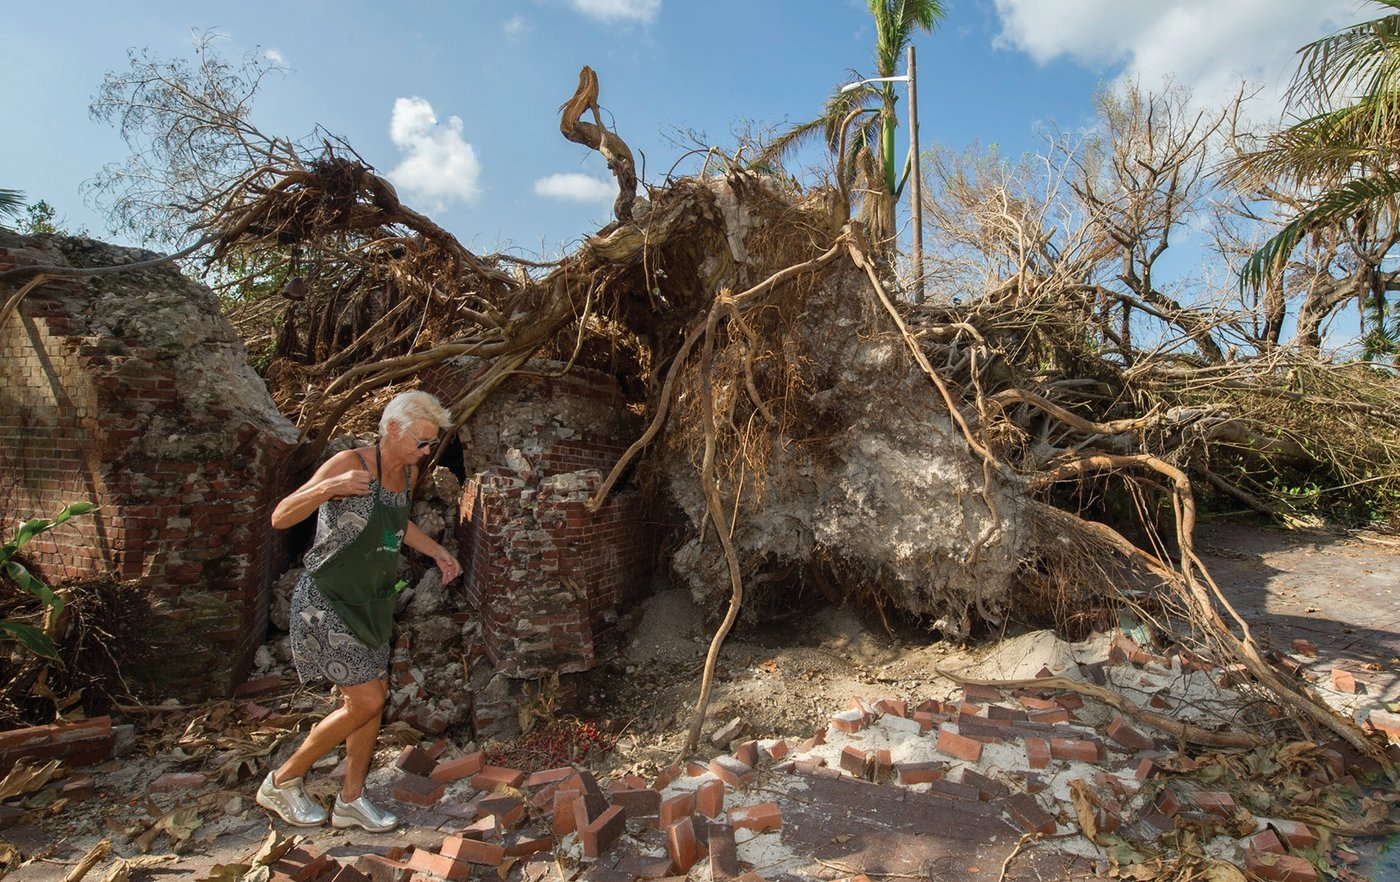 Rosi Ware of the Key West Garden Club walks past the base of an 80-foot strangler fig tree that toppled during the storm. Estimated at 75 years old, the tree was the centerpiece of a Civil War-era fort that had been turned into a popular garden and wedding venue on Higgs Beach in Key West.